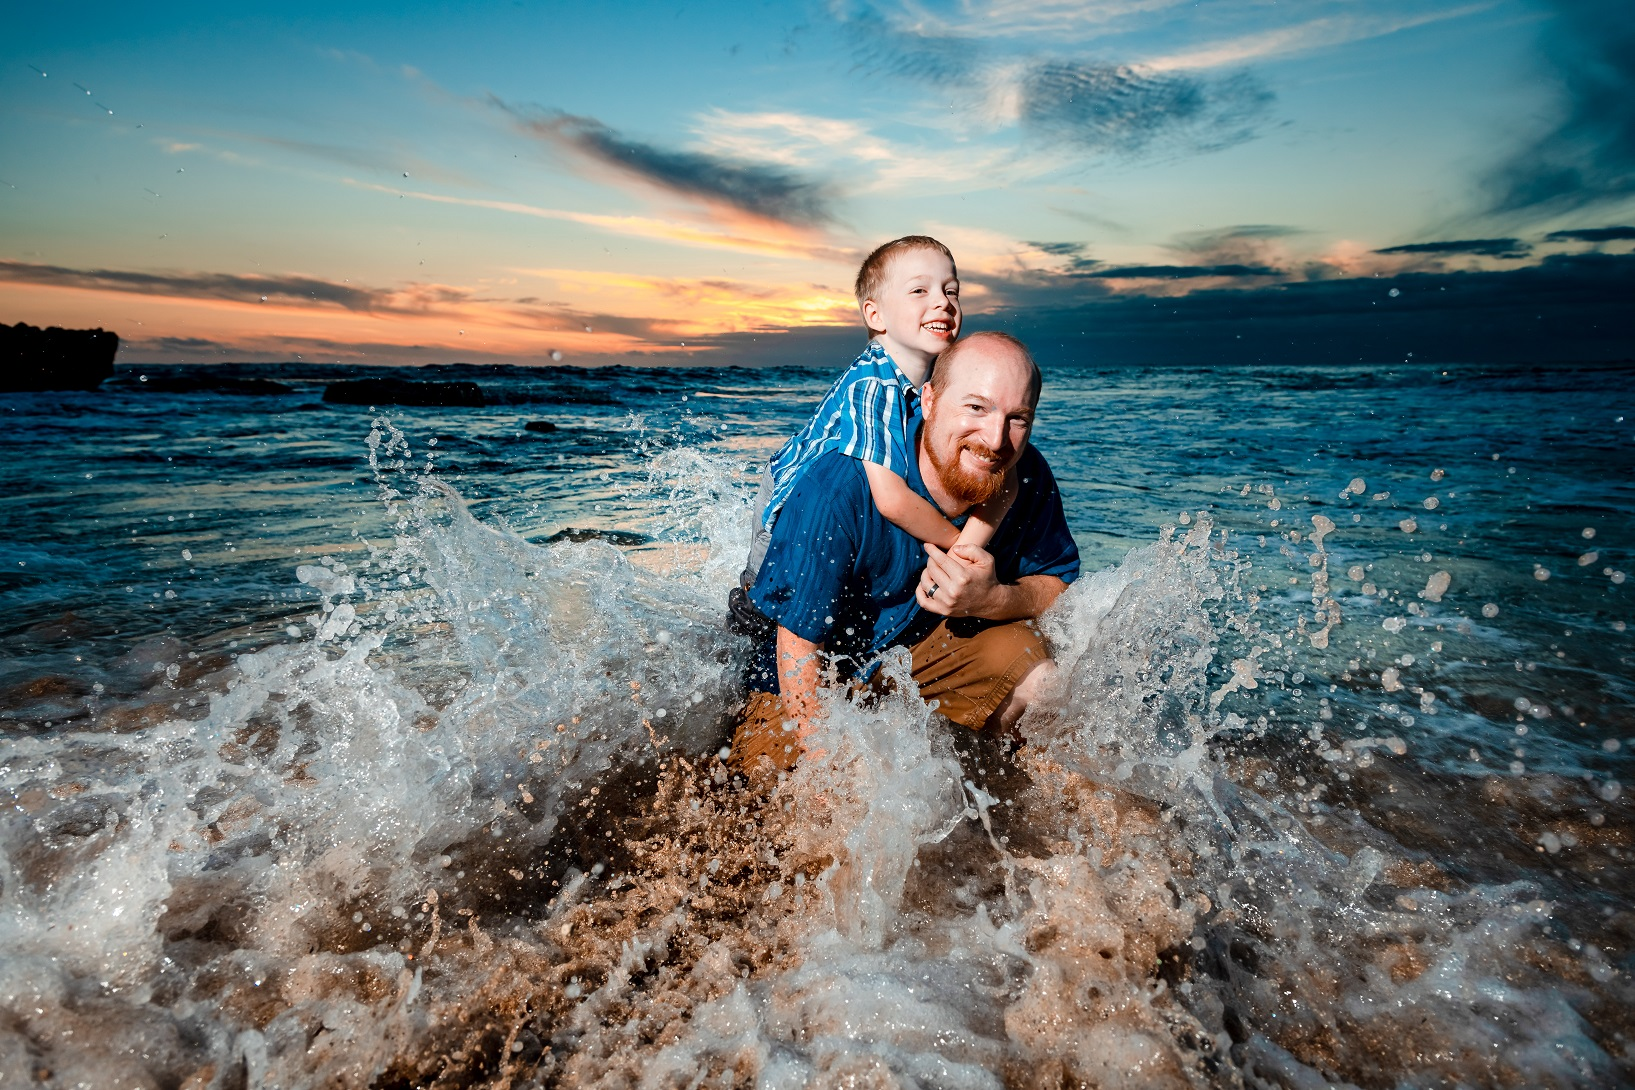 maui sunset beach family portrait photographer